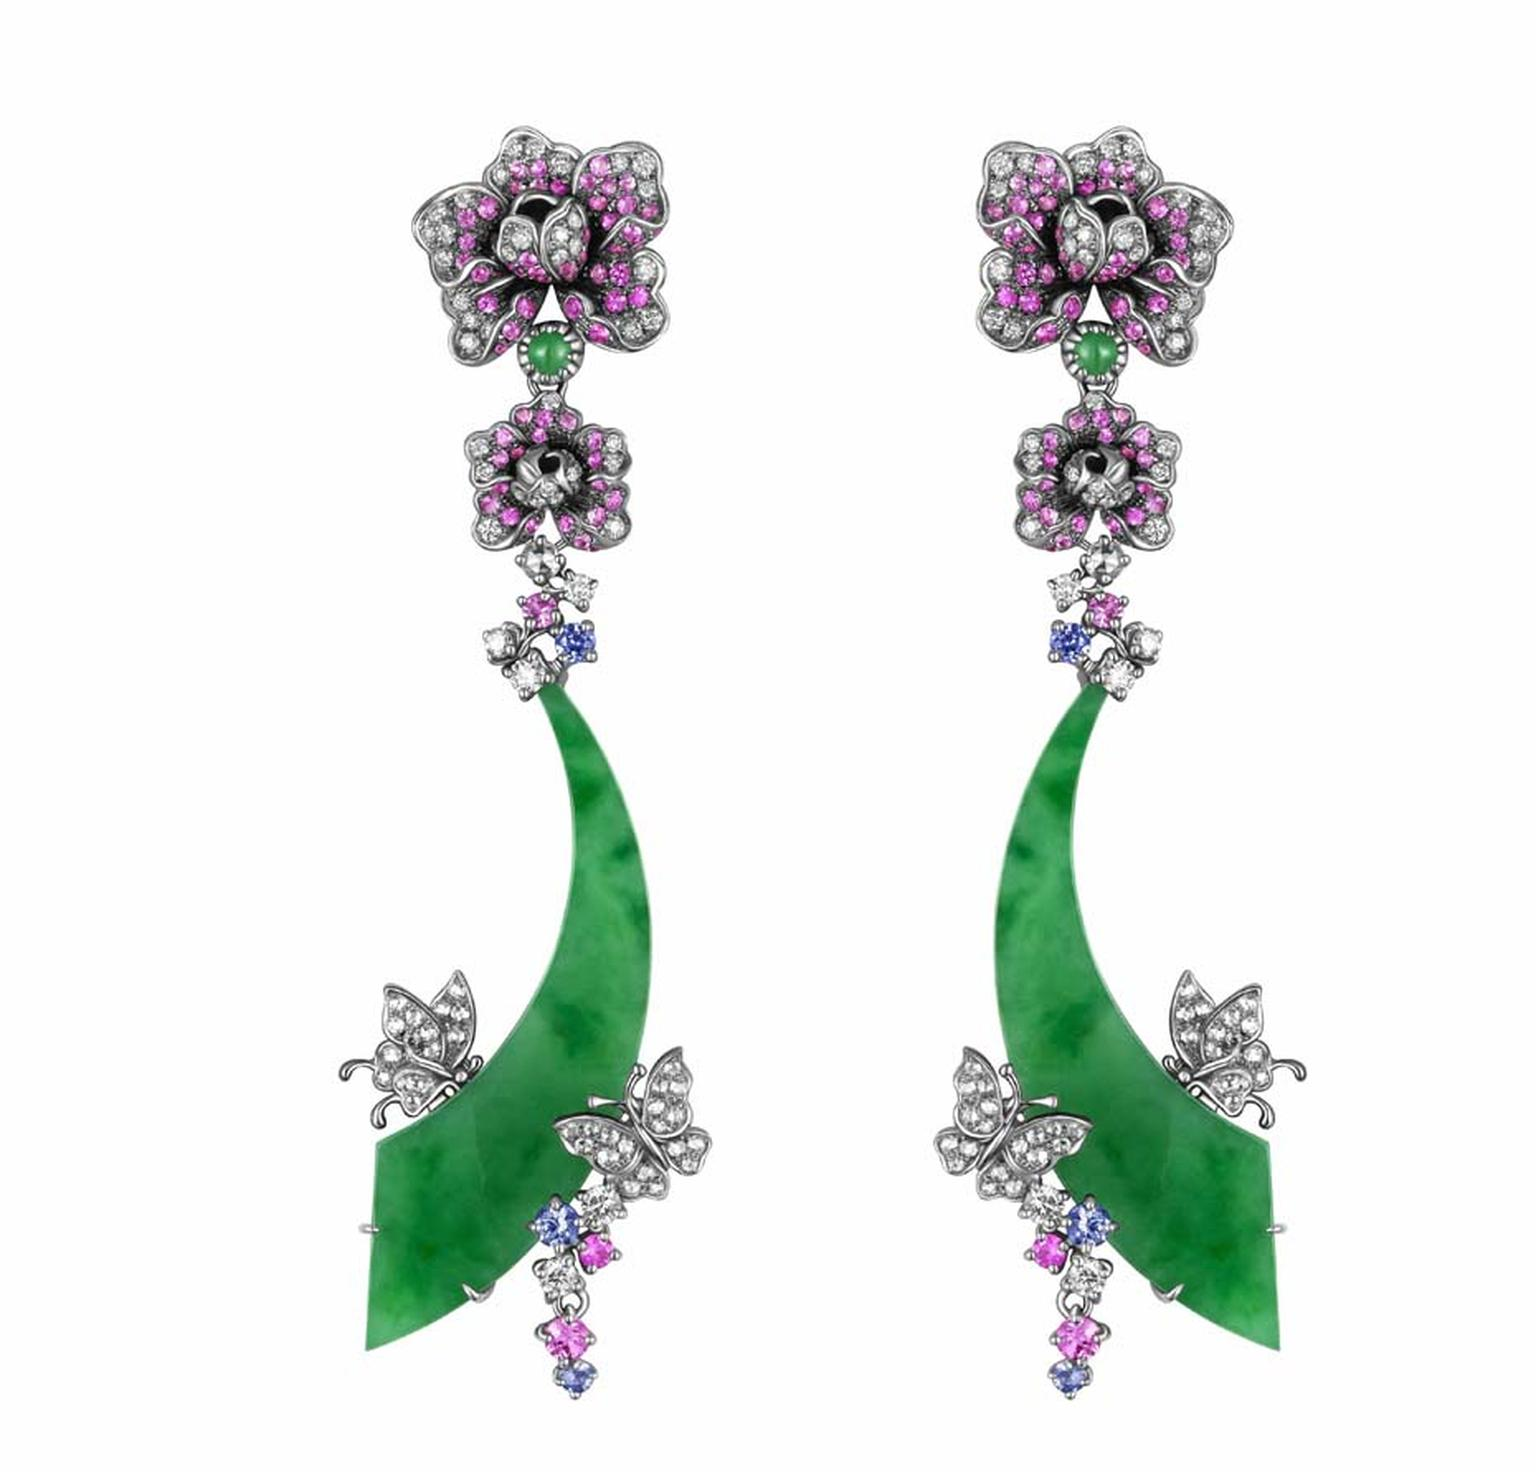 jadeite_high jewellery_Yewn_003.jpg